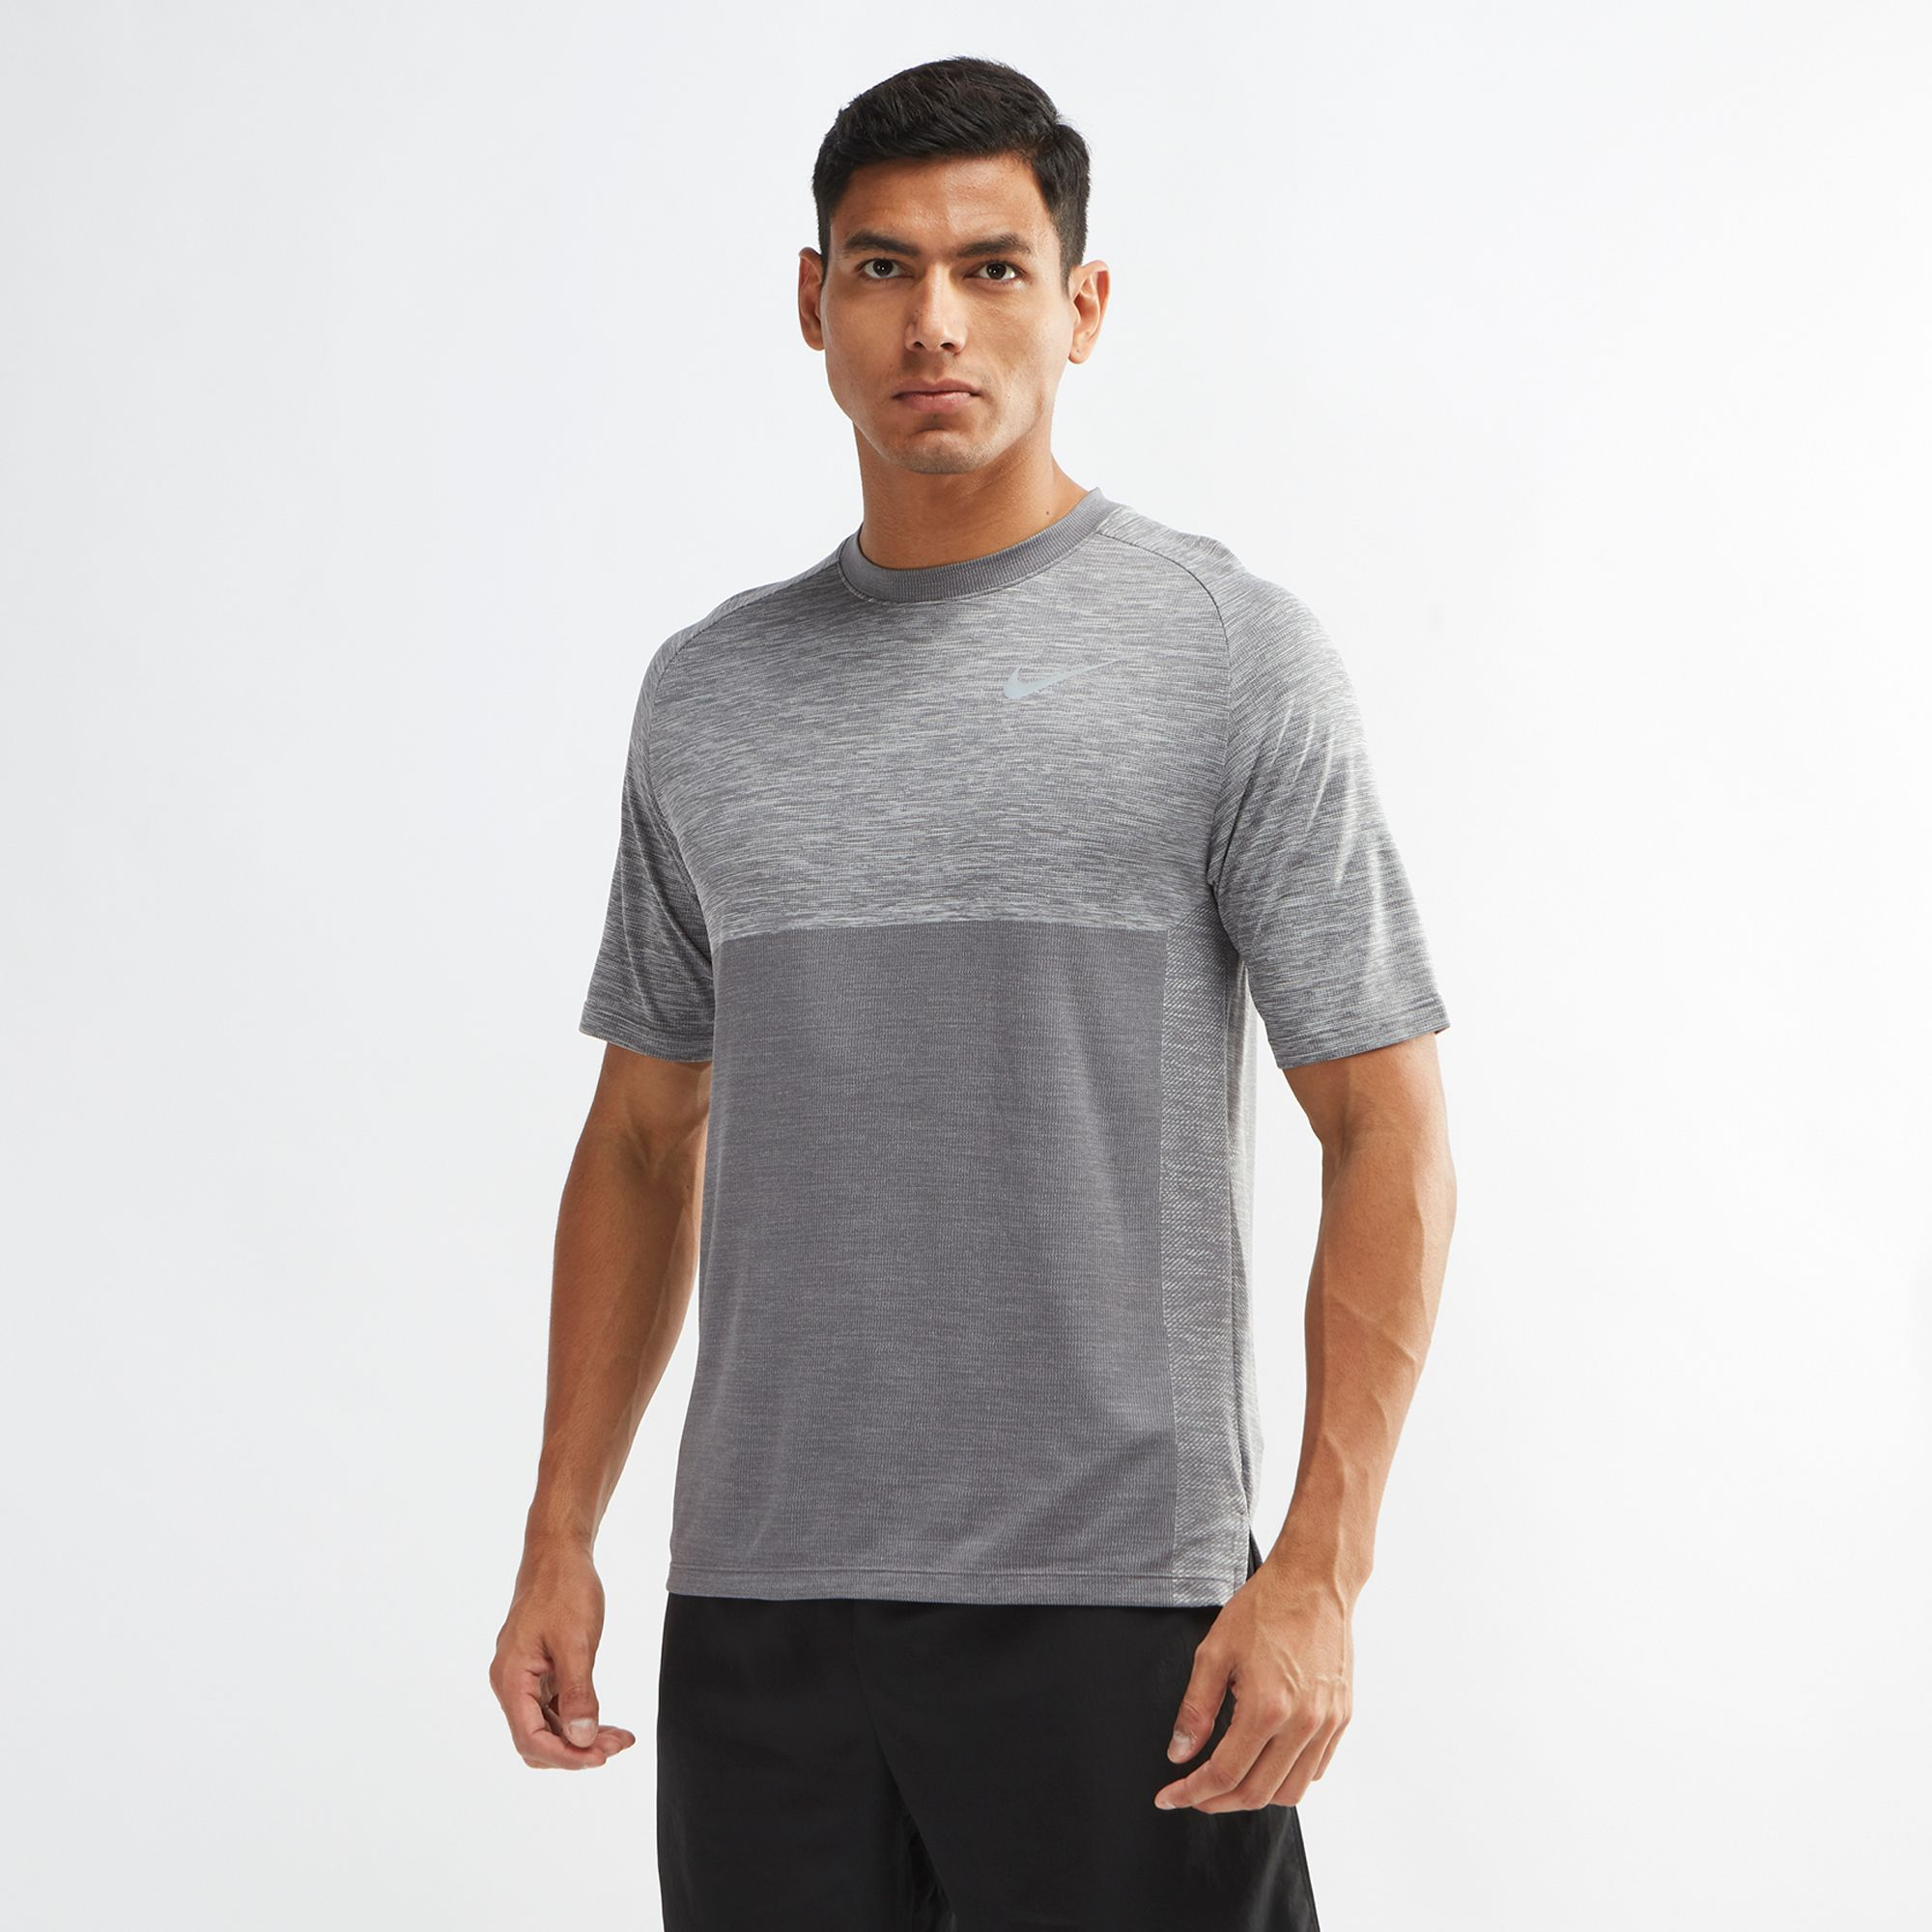 b4af8d02 Nike Running T Shirt Grey – EDGE Engineering and Consulting Limited